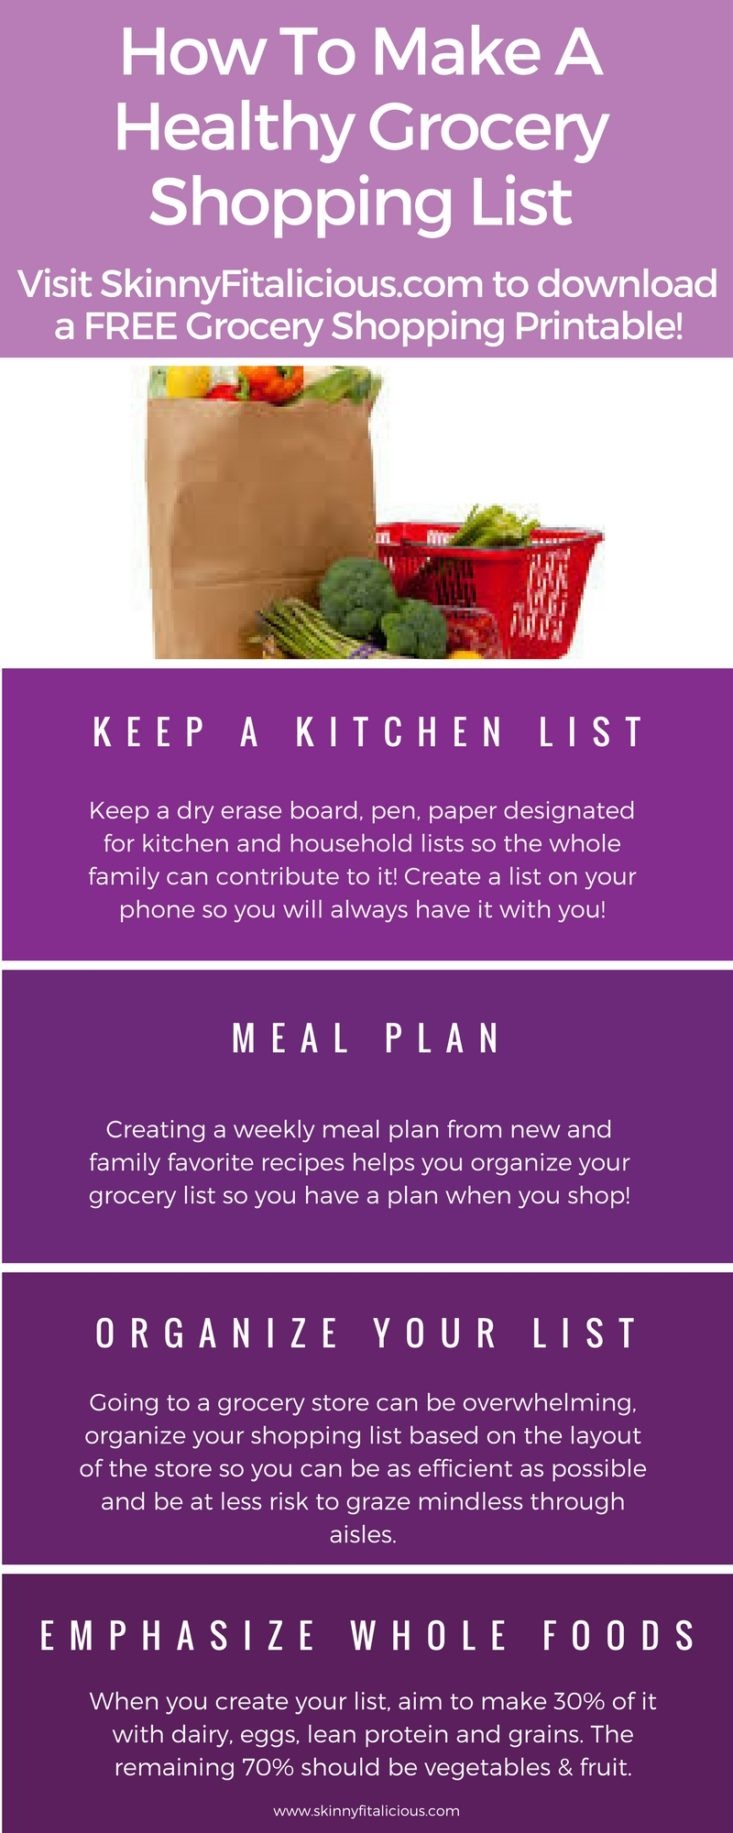 how to make a healthy grocery shopping list skinny fitalicious